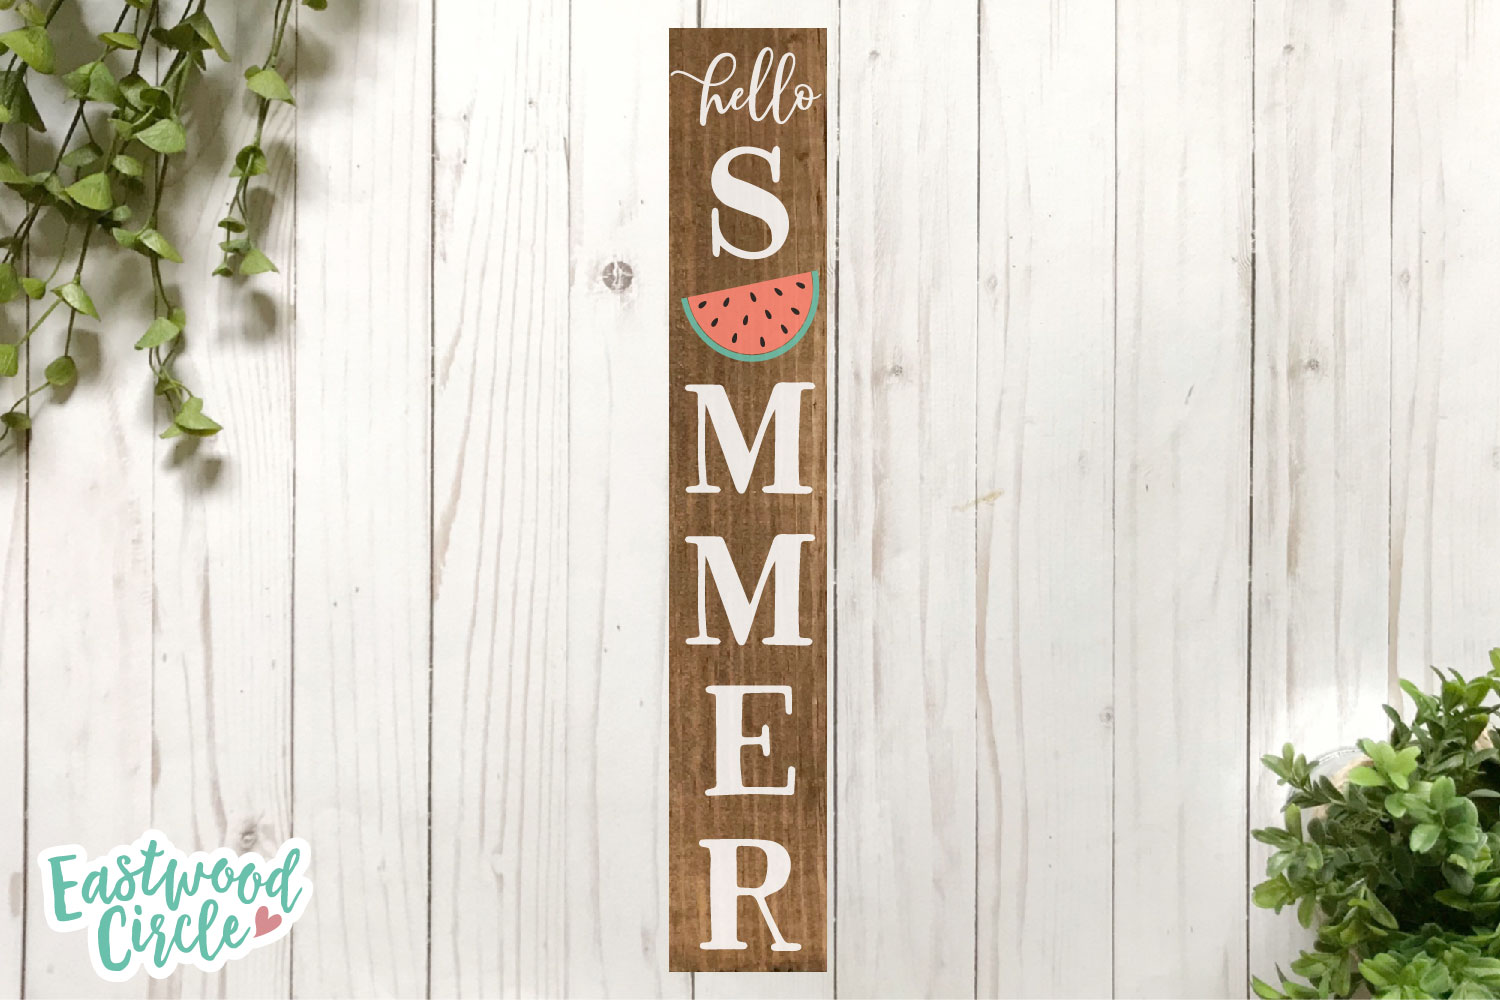 Summer SVG Bundle - Cut Files for Signs example image 8